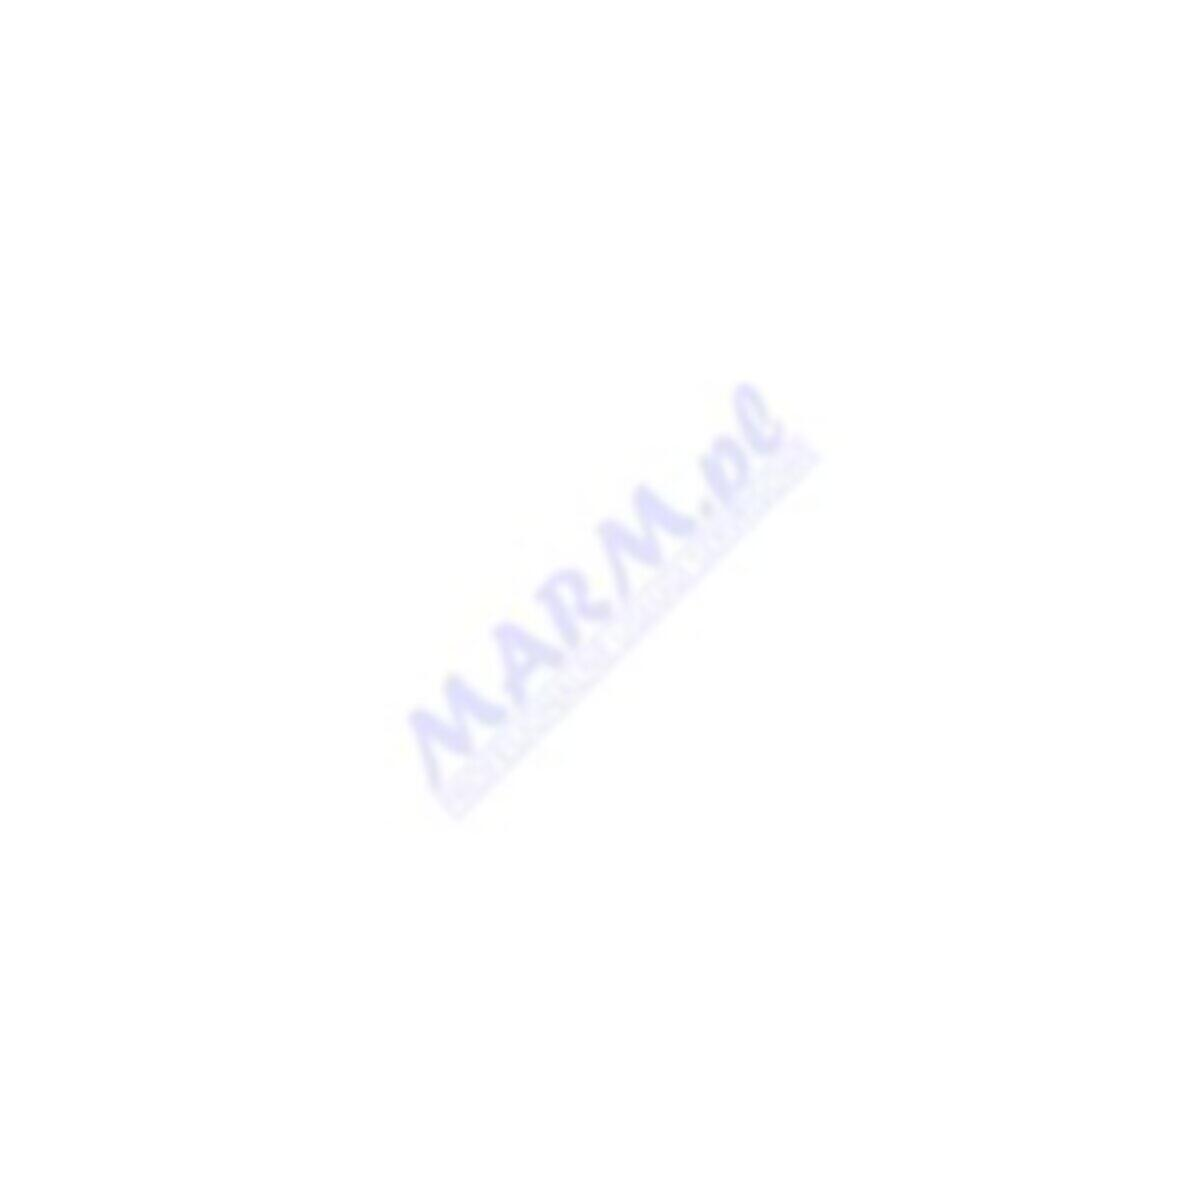 FEED ROLLER MANUAL FEED MPC5501 BYPASS AF031046 RICOH